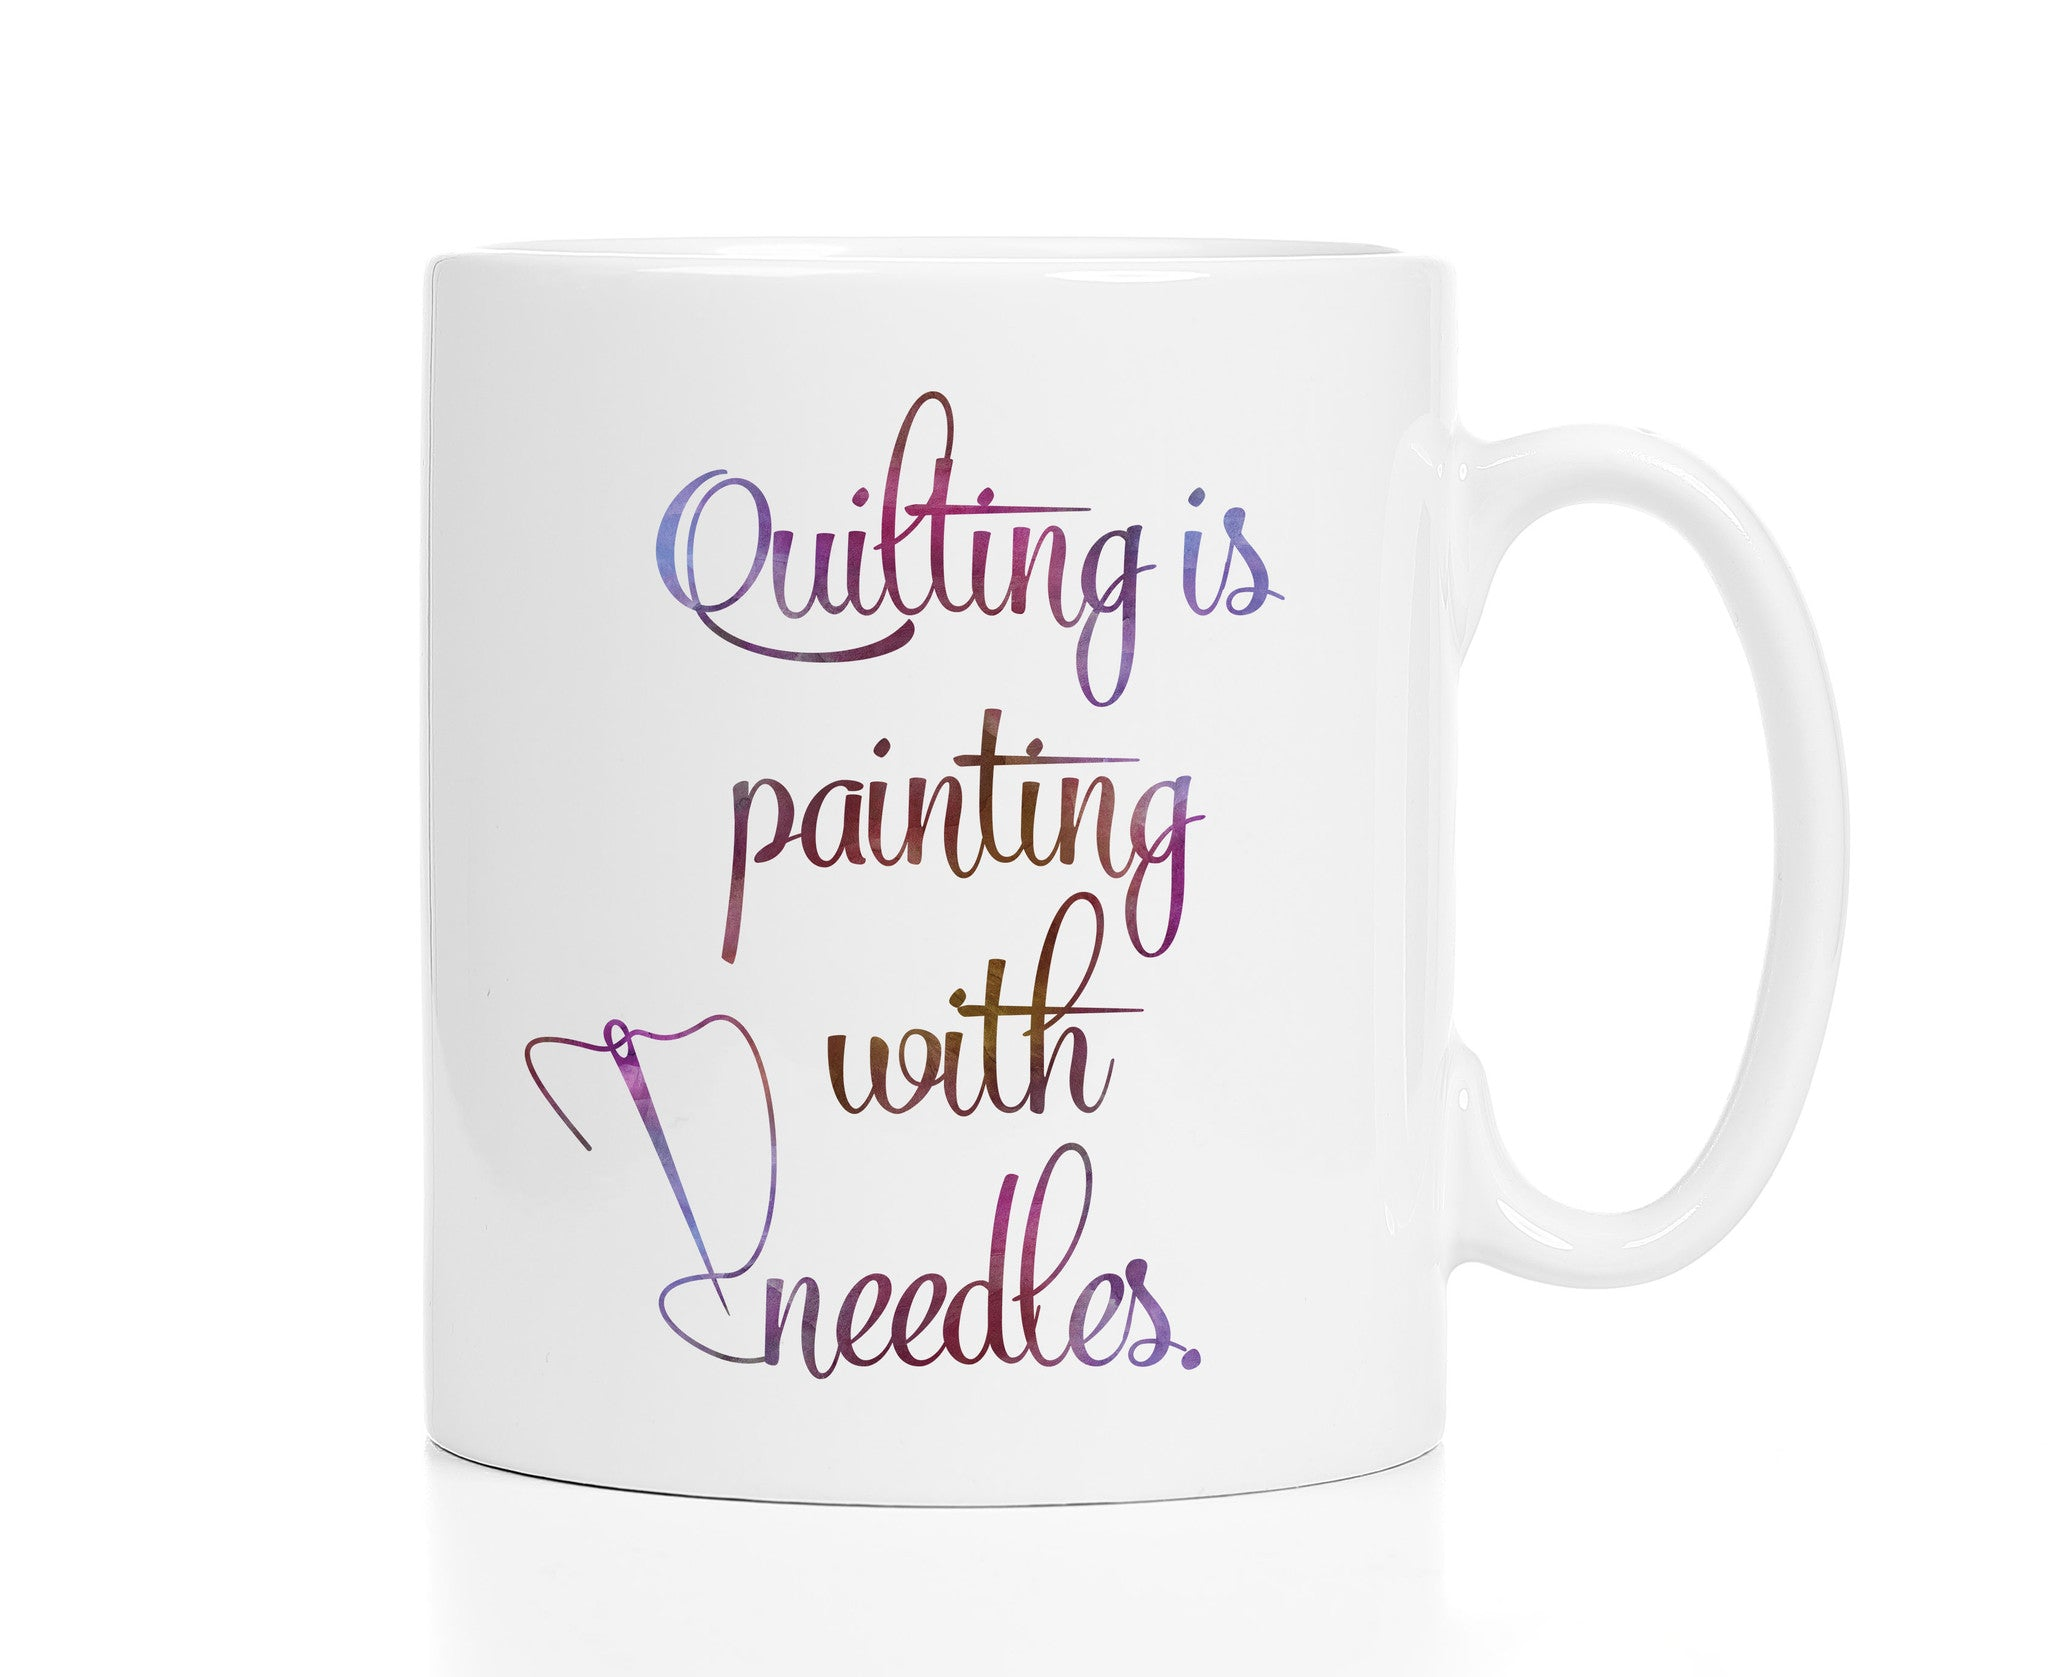 Quilting Is Painting With Needles Mug